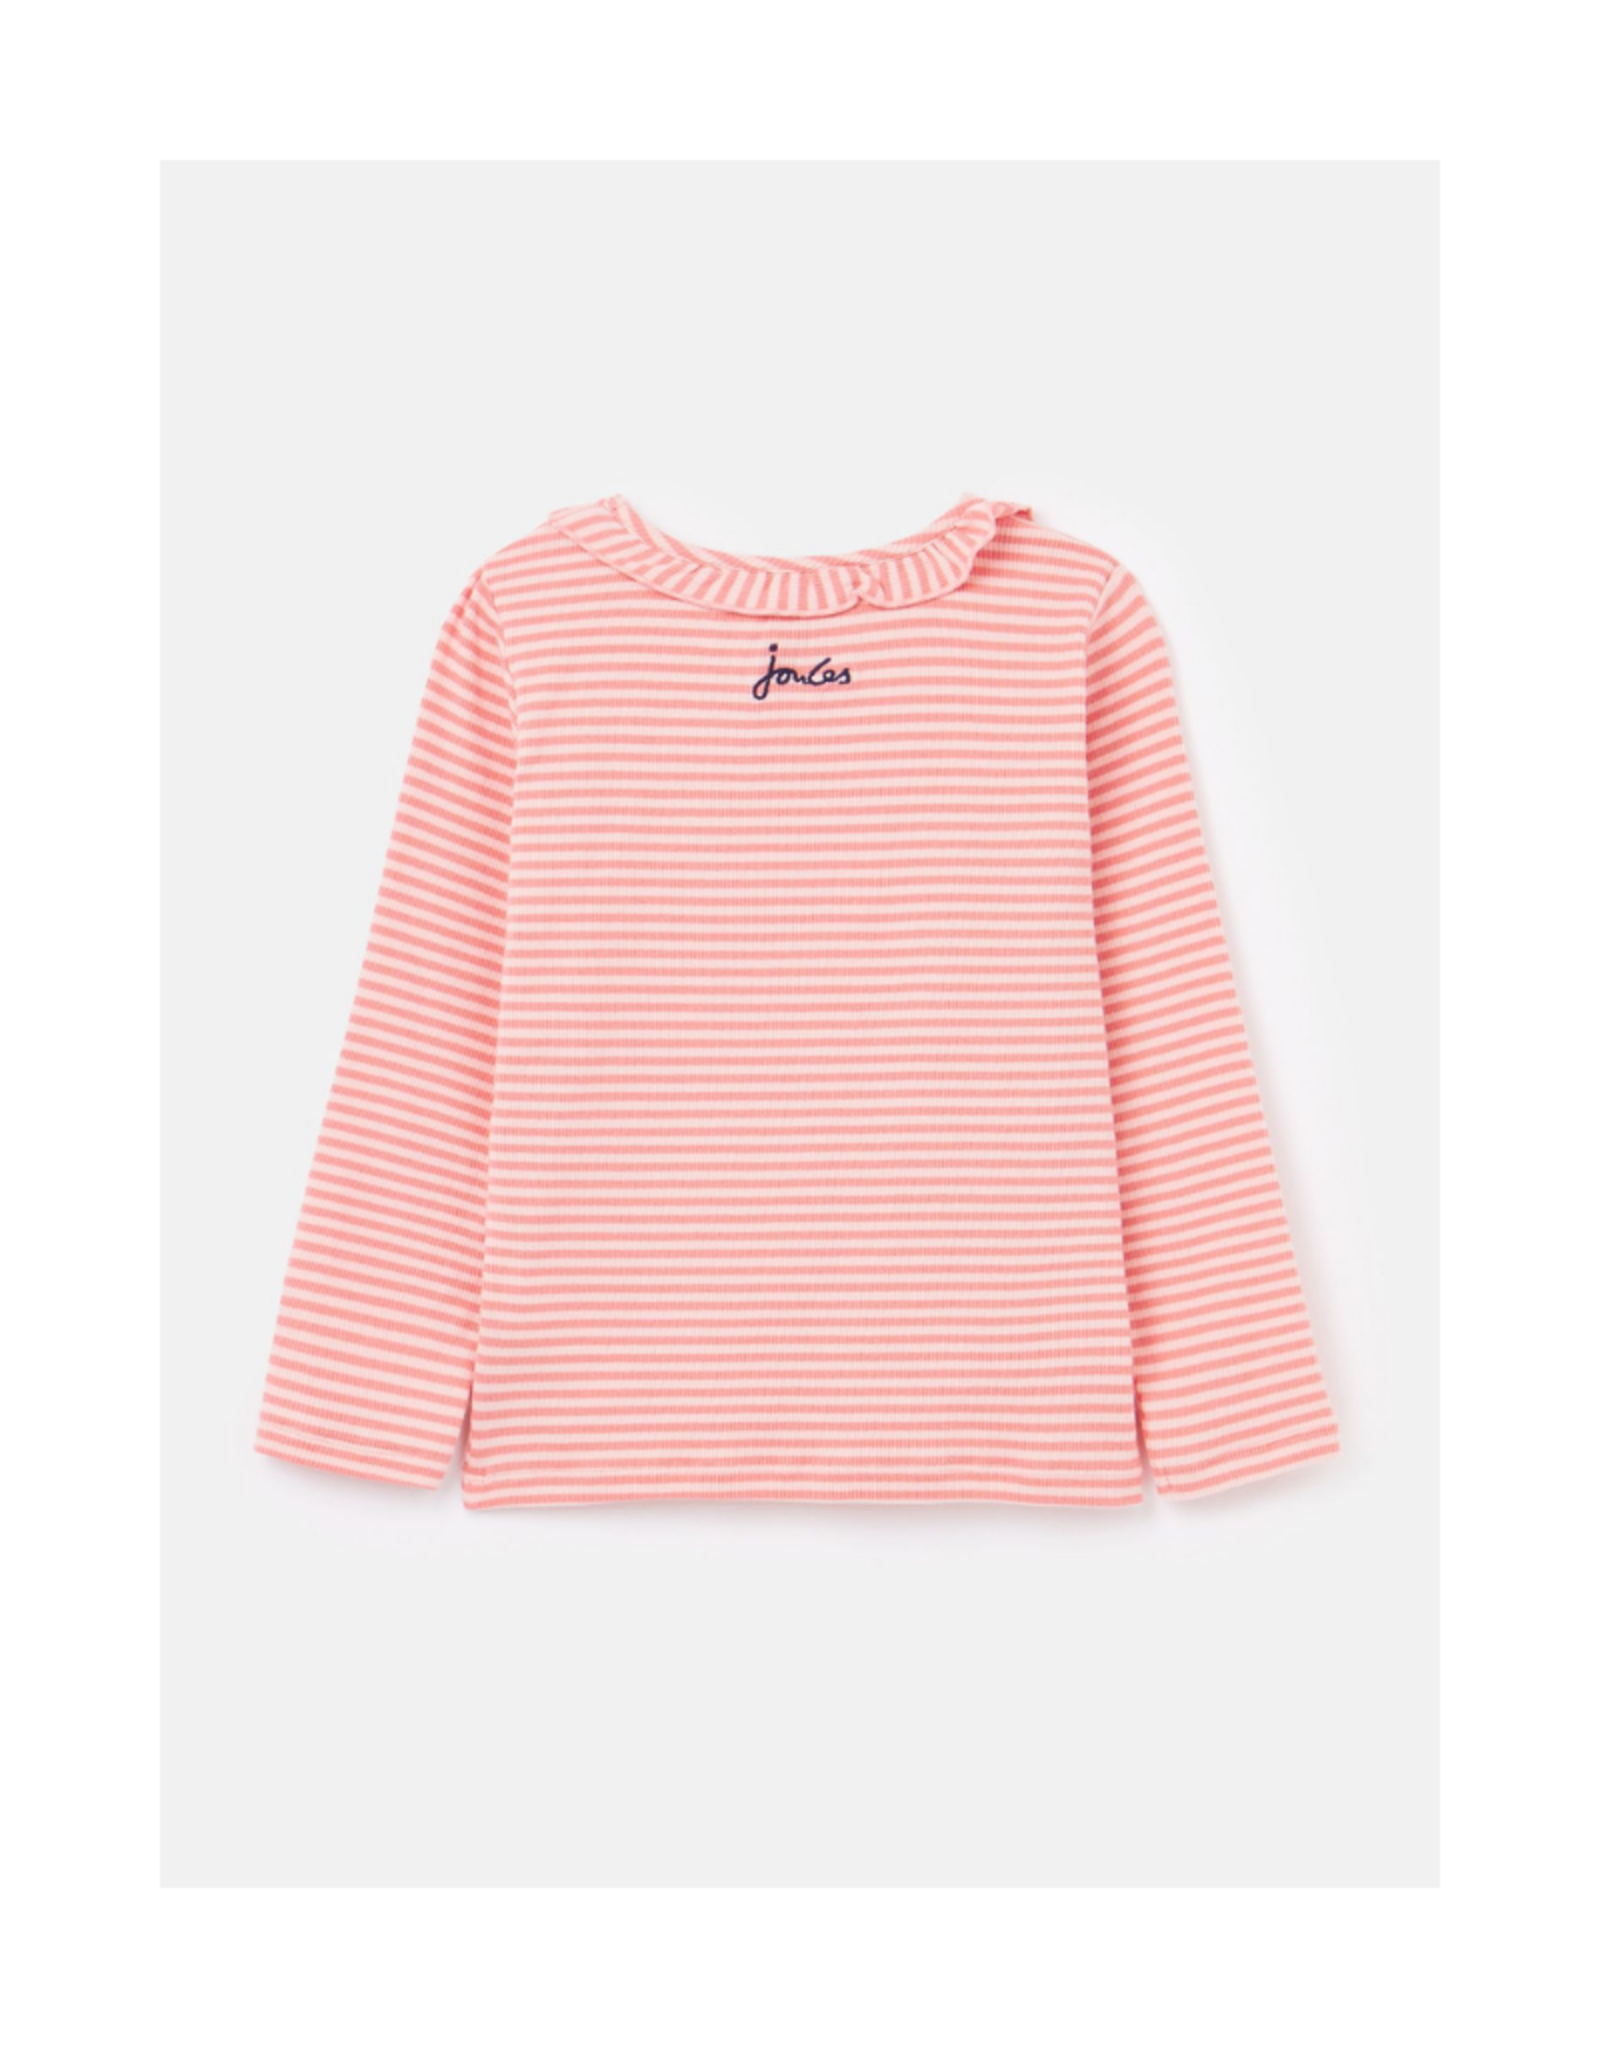 Muriel Rib Tee with Frill Neck